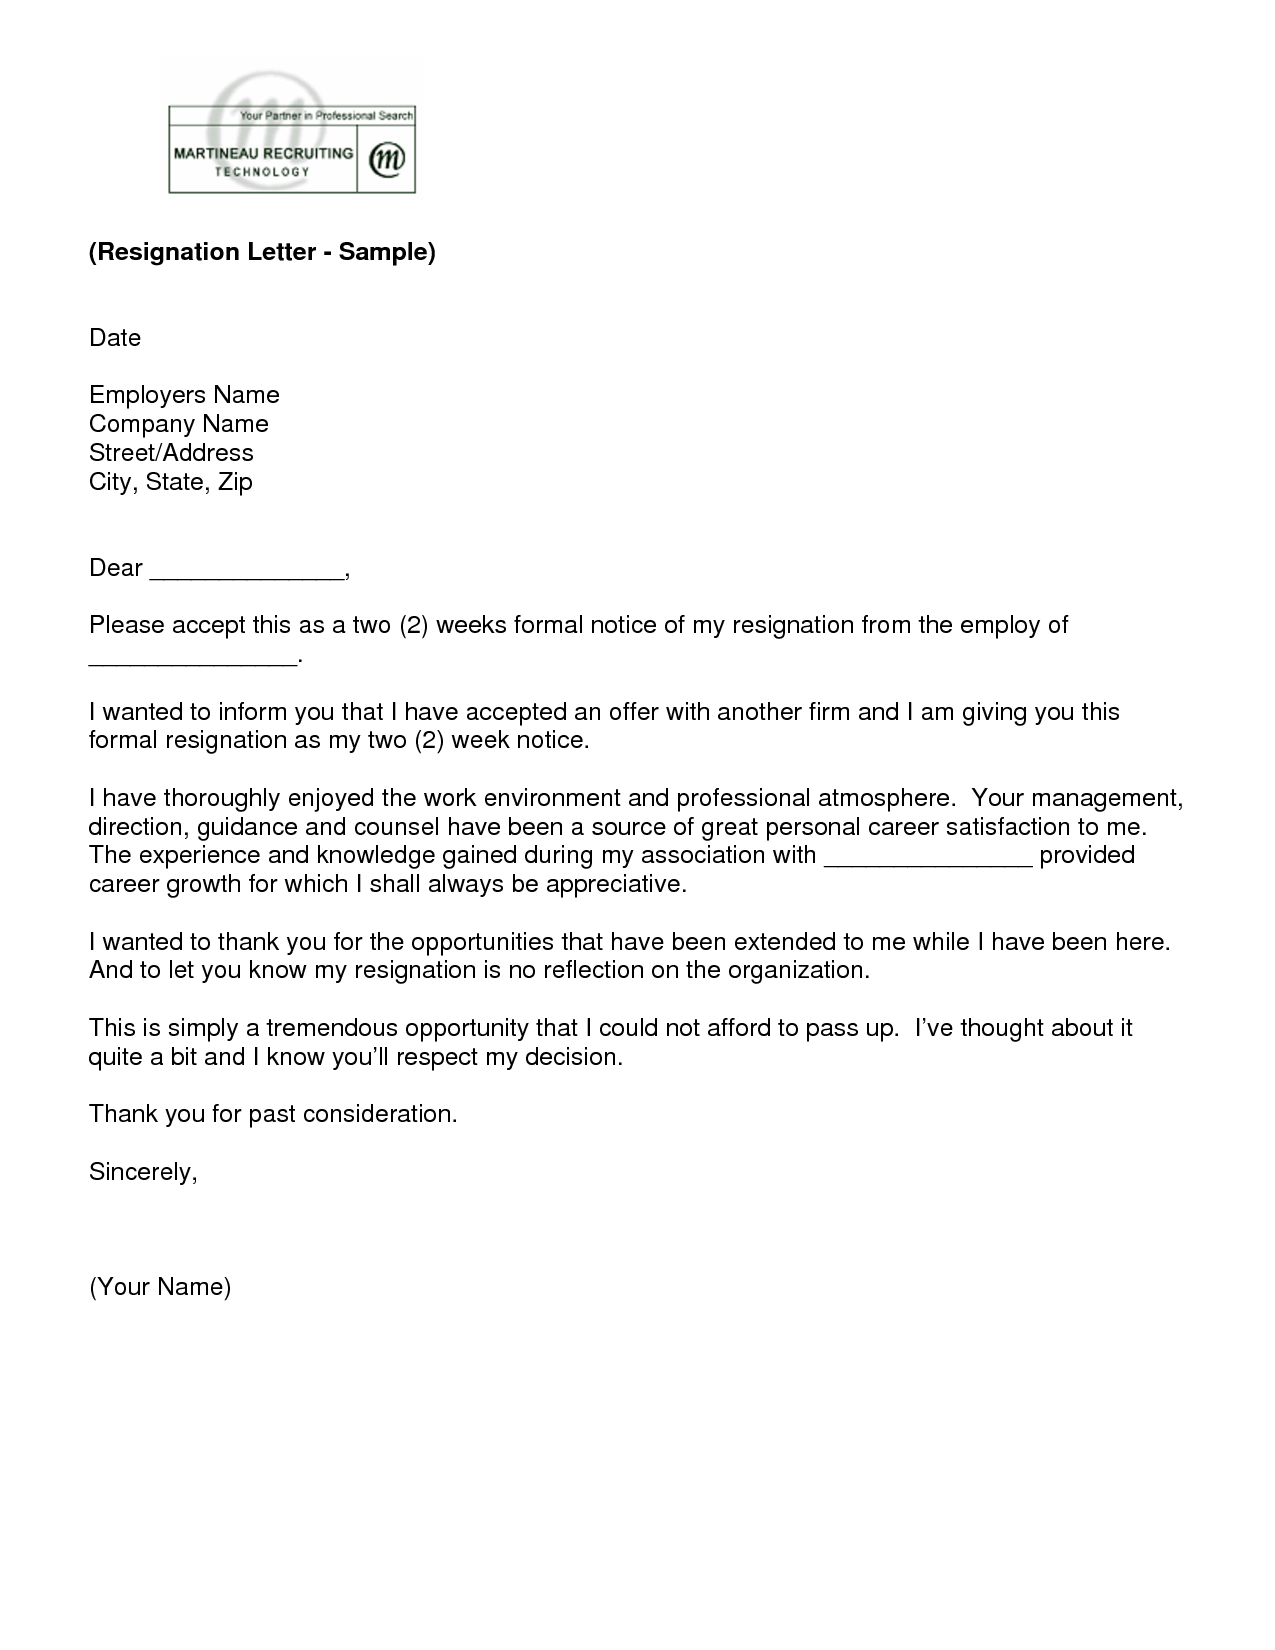 printable sample letter of resignation form online attorney letter of resignation 2 weeks notice template